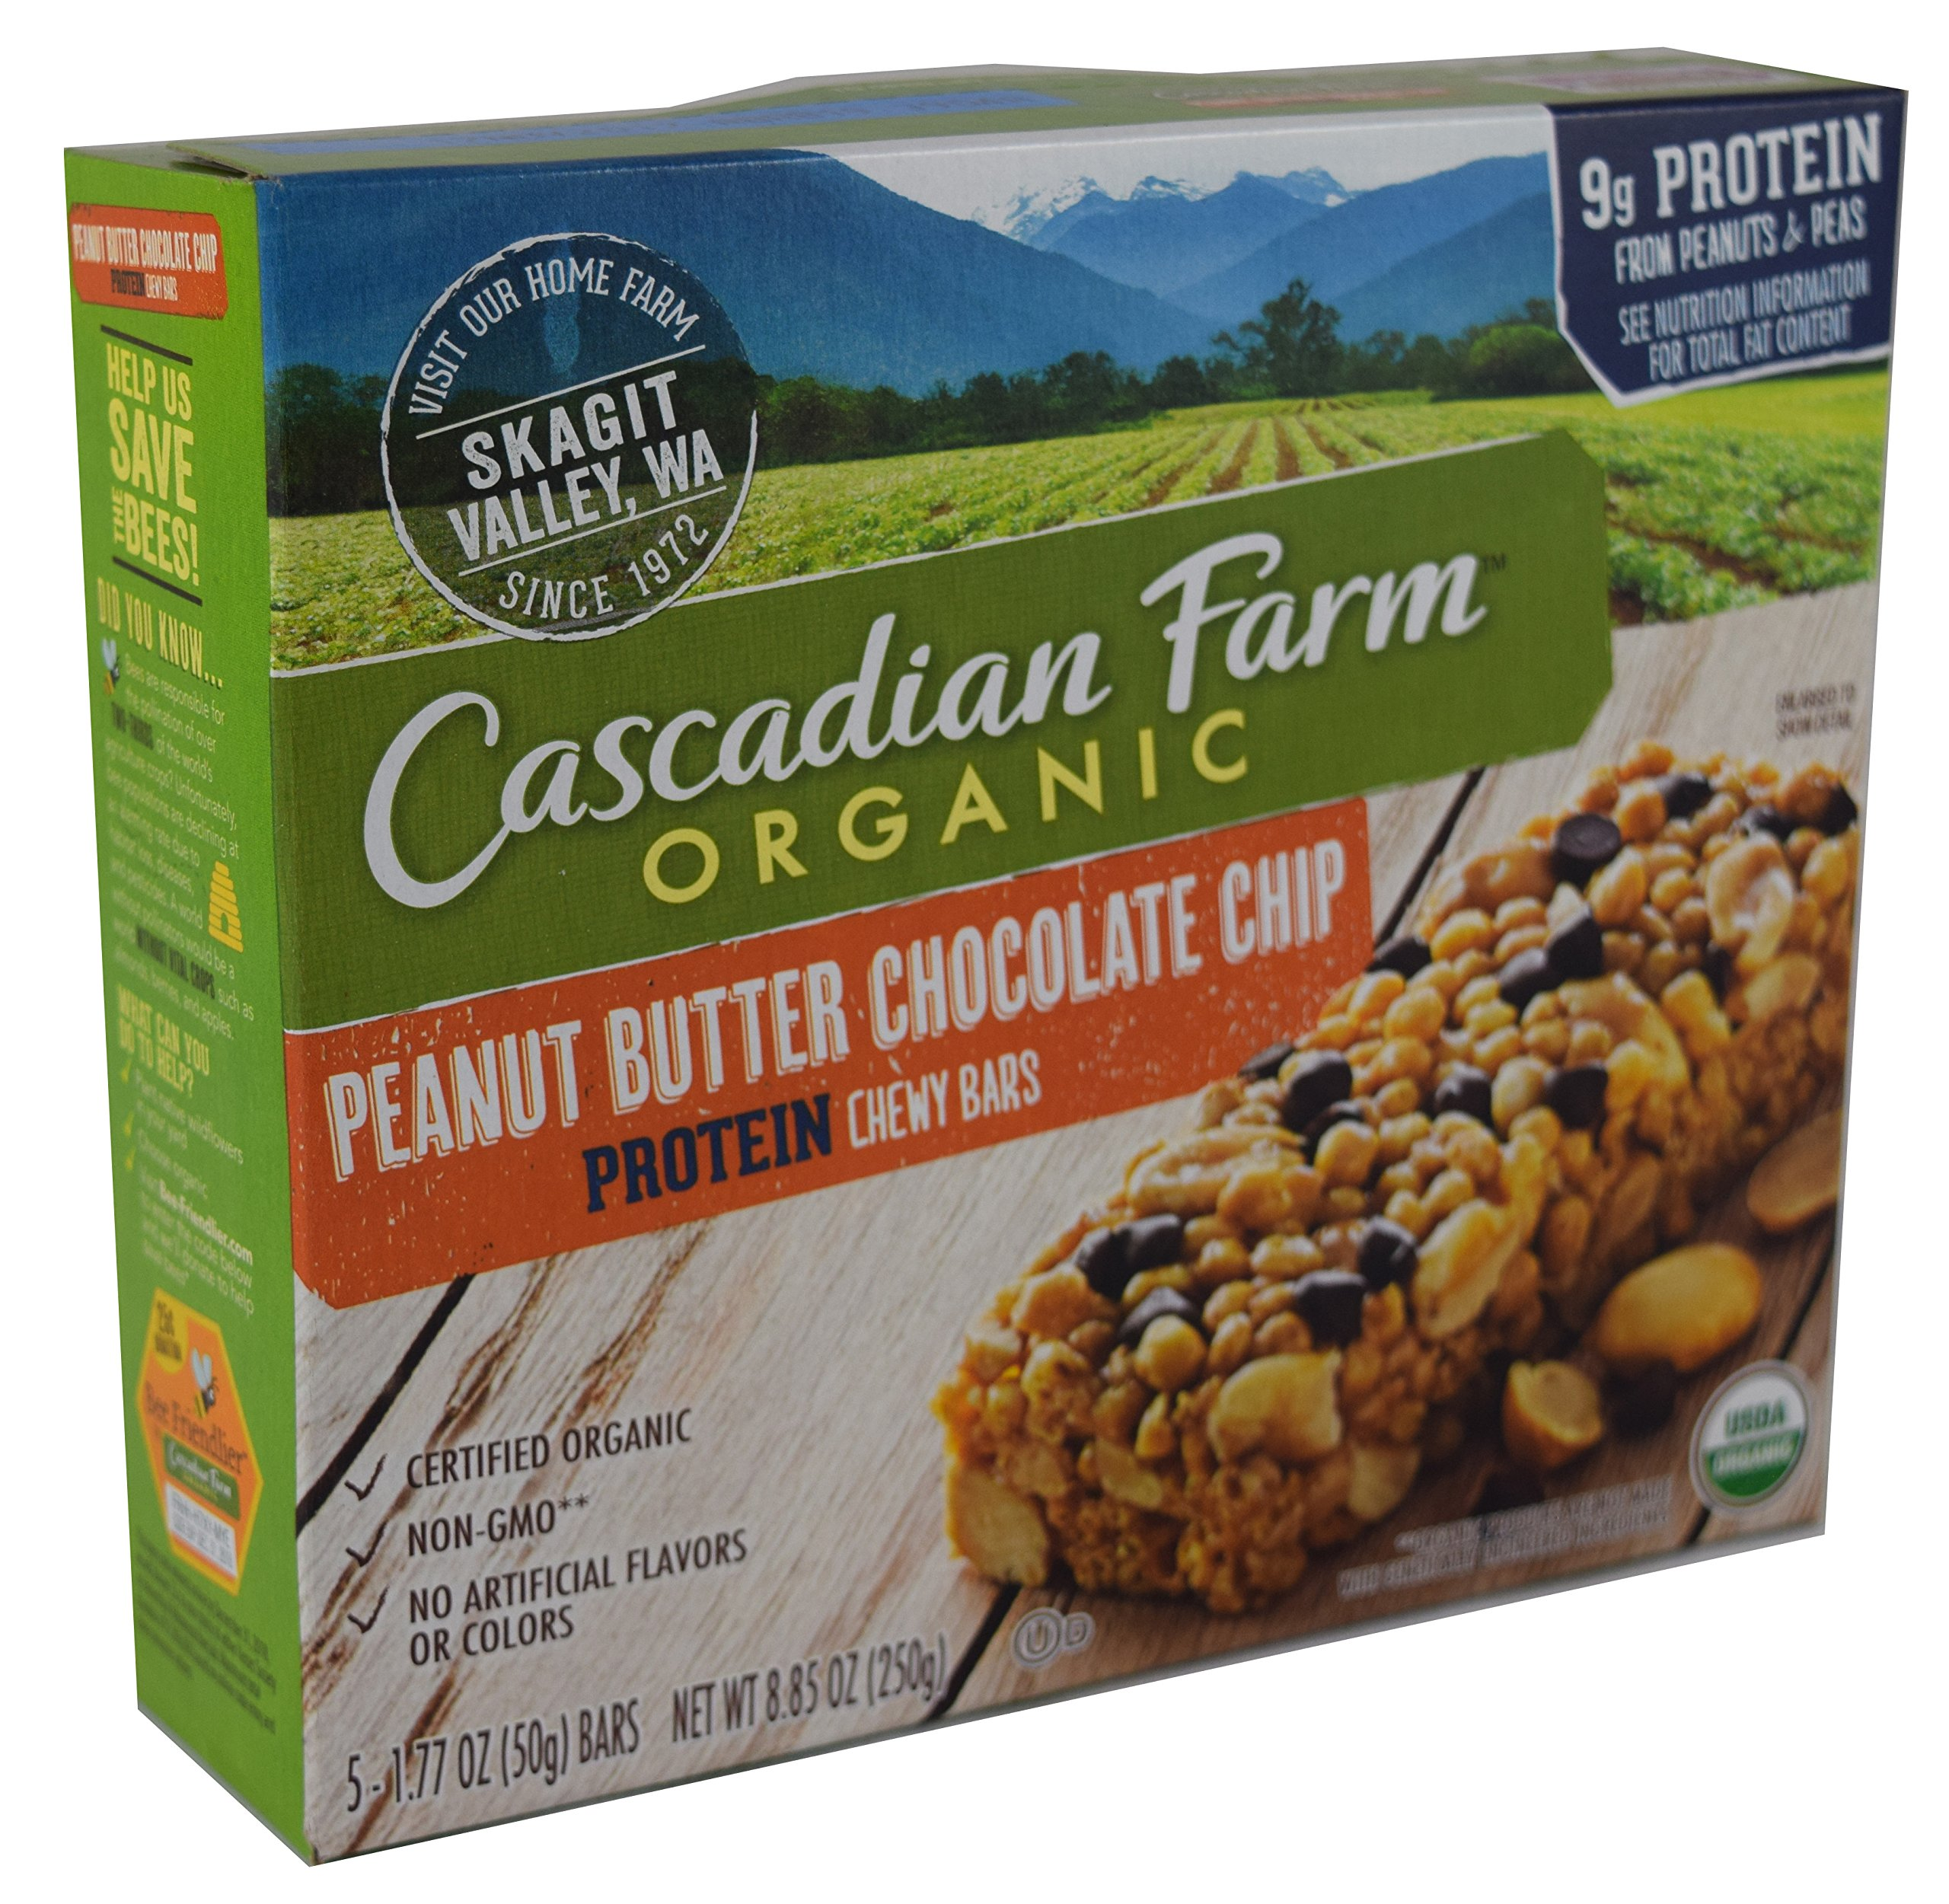 Cascadian Farm Organic Peanut Butter Chocolate Chip Protein, 8.85 oz Box (Pack of 4)